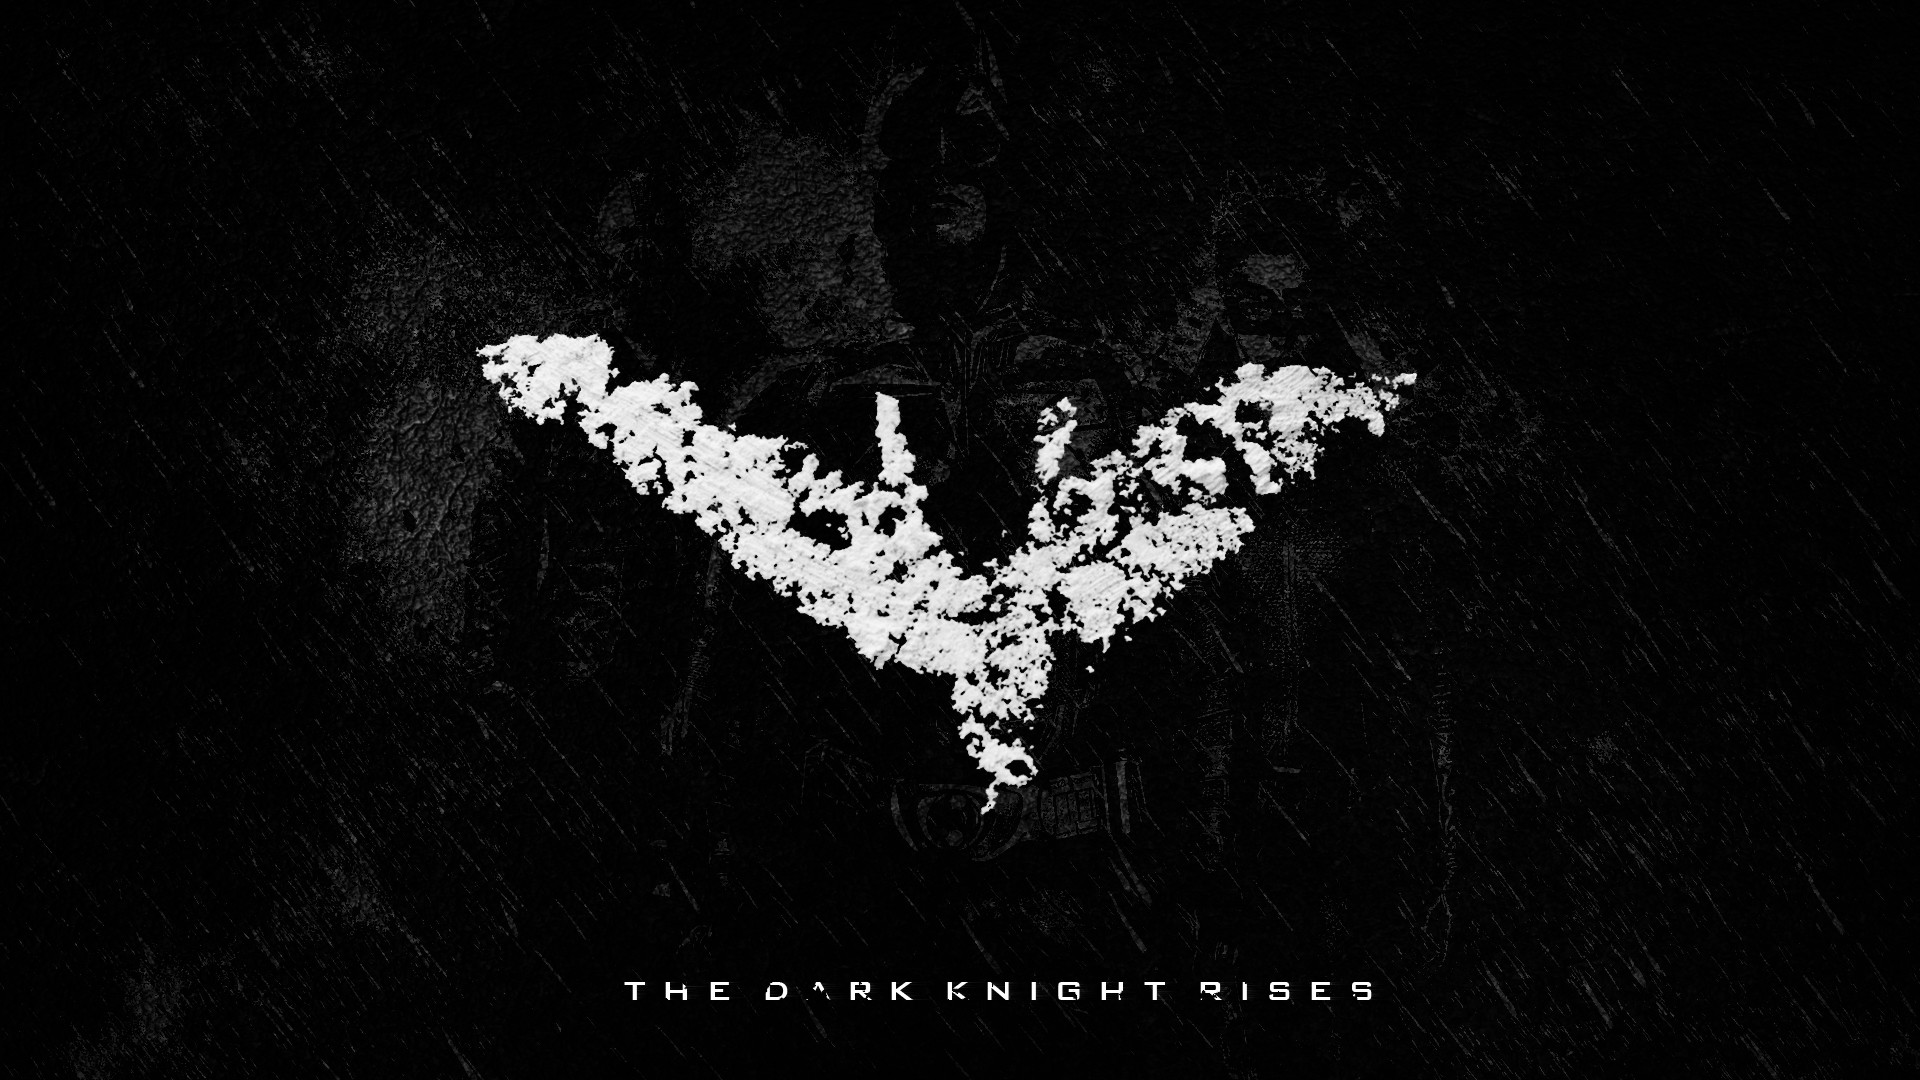 1920x1080 ... The Dark Knight Rises Wallpaper 2 by PKwithVengeance